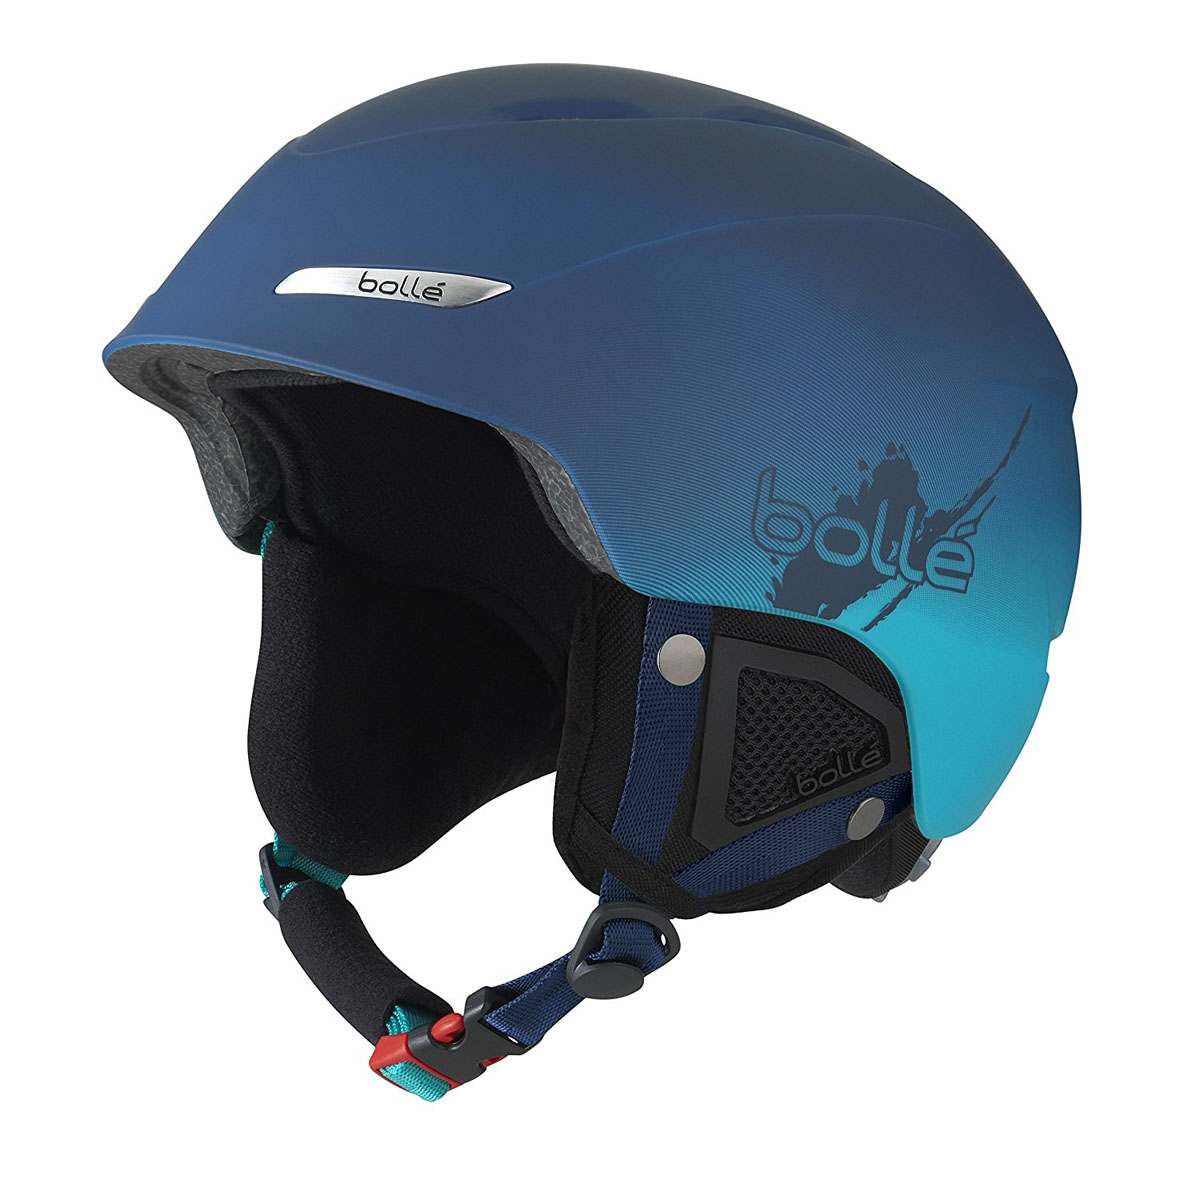 Bolle B-Yond Ski Helmet Soft Blue Gradient by Bolle